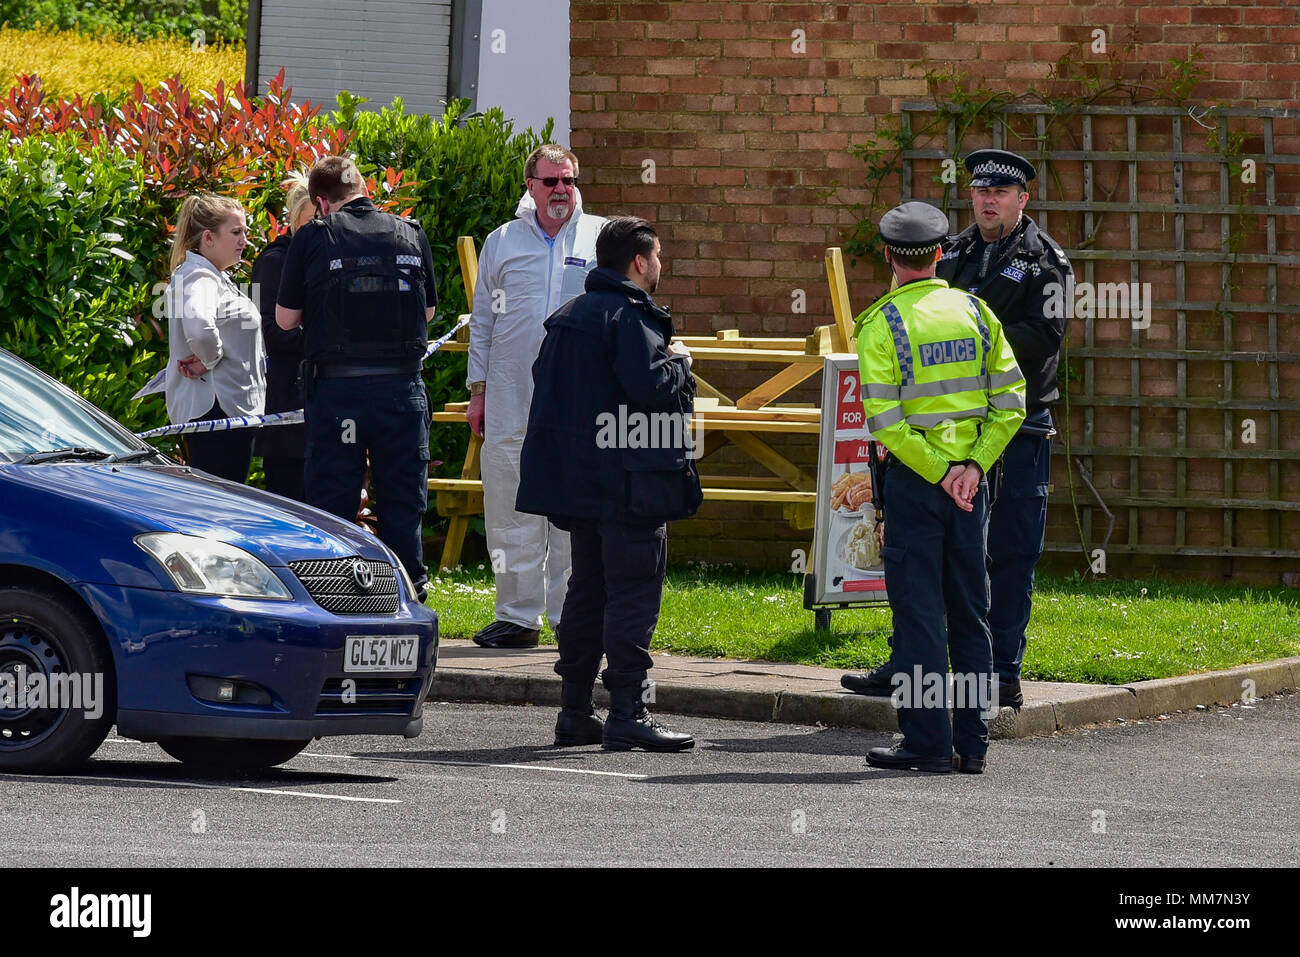 Slough, United Kingdom. 10th May 2018. A murder investigation has been launched after a man died following an incident in Slough. Police were called to The Earl of Cornwall Pub in Cippenham Lane at around 23:30 on 9th May 2018 to reports of a fight in progress. A 43-year-old man from Slough was taken to hospital with life-threatening injuries where he later died. Credit: Peter Manning/Alamy Live News - Stock Image